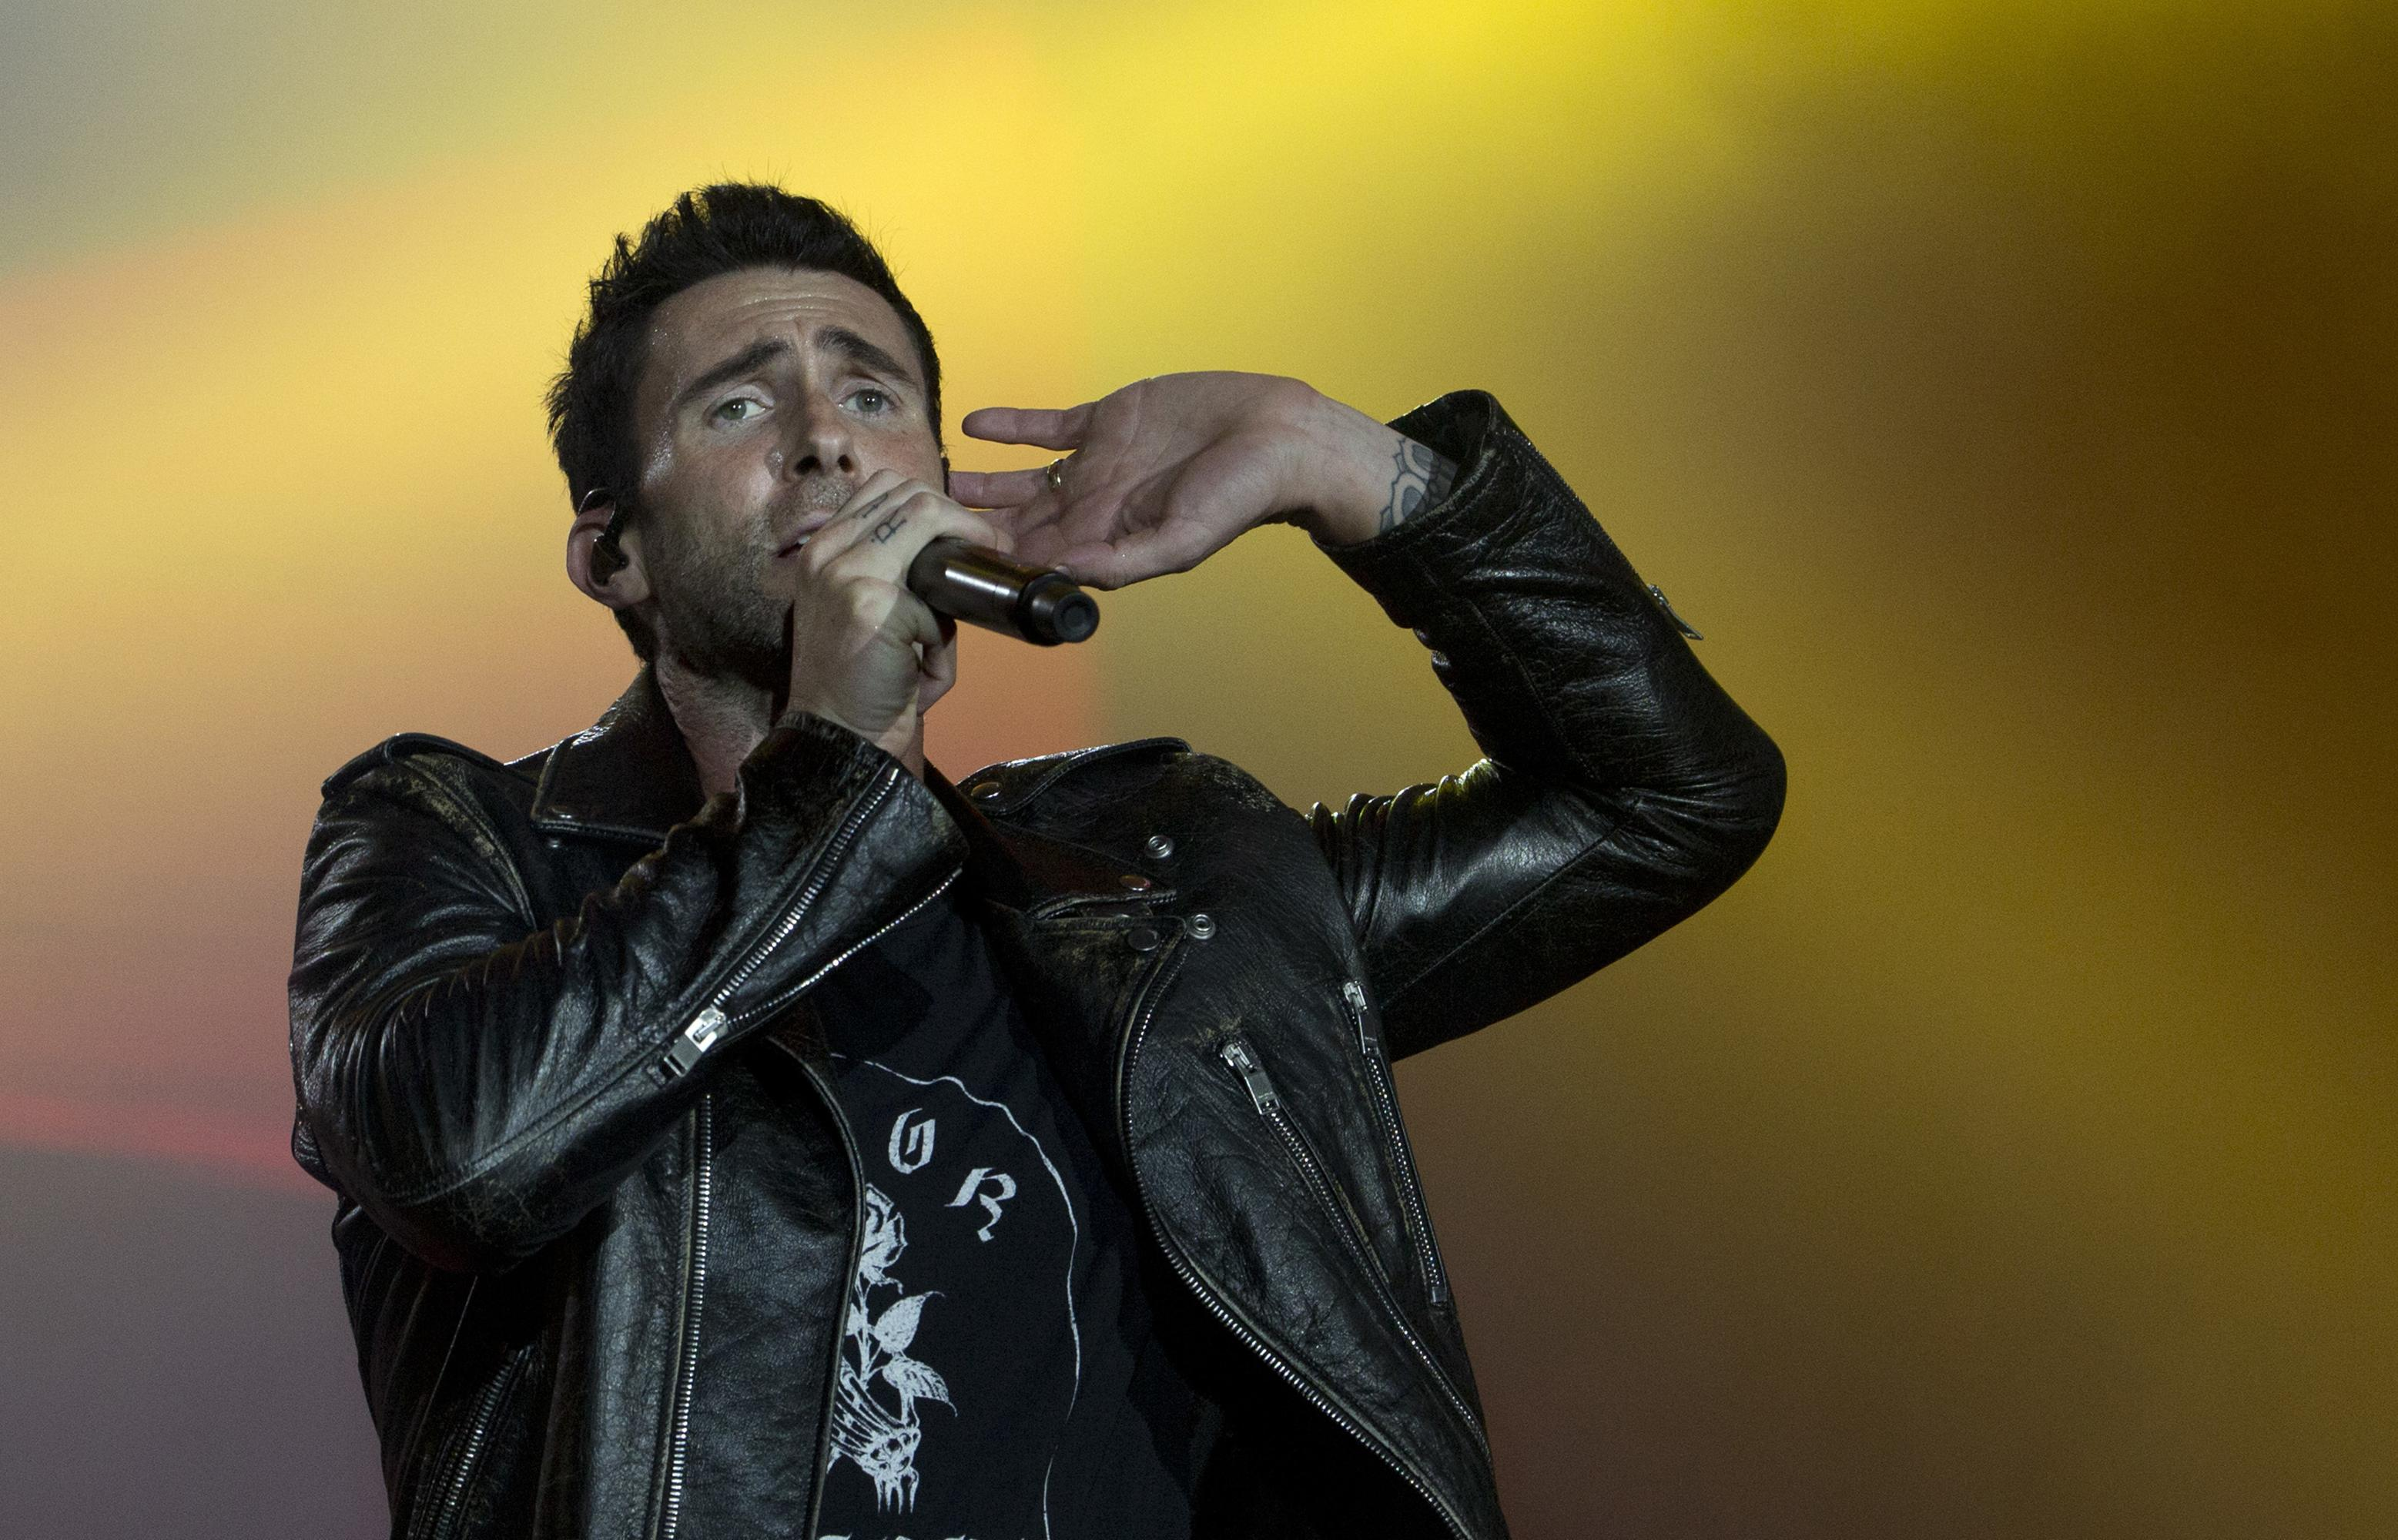 Maroon 5 will headline this year's Super Bowl halftime show